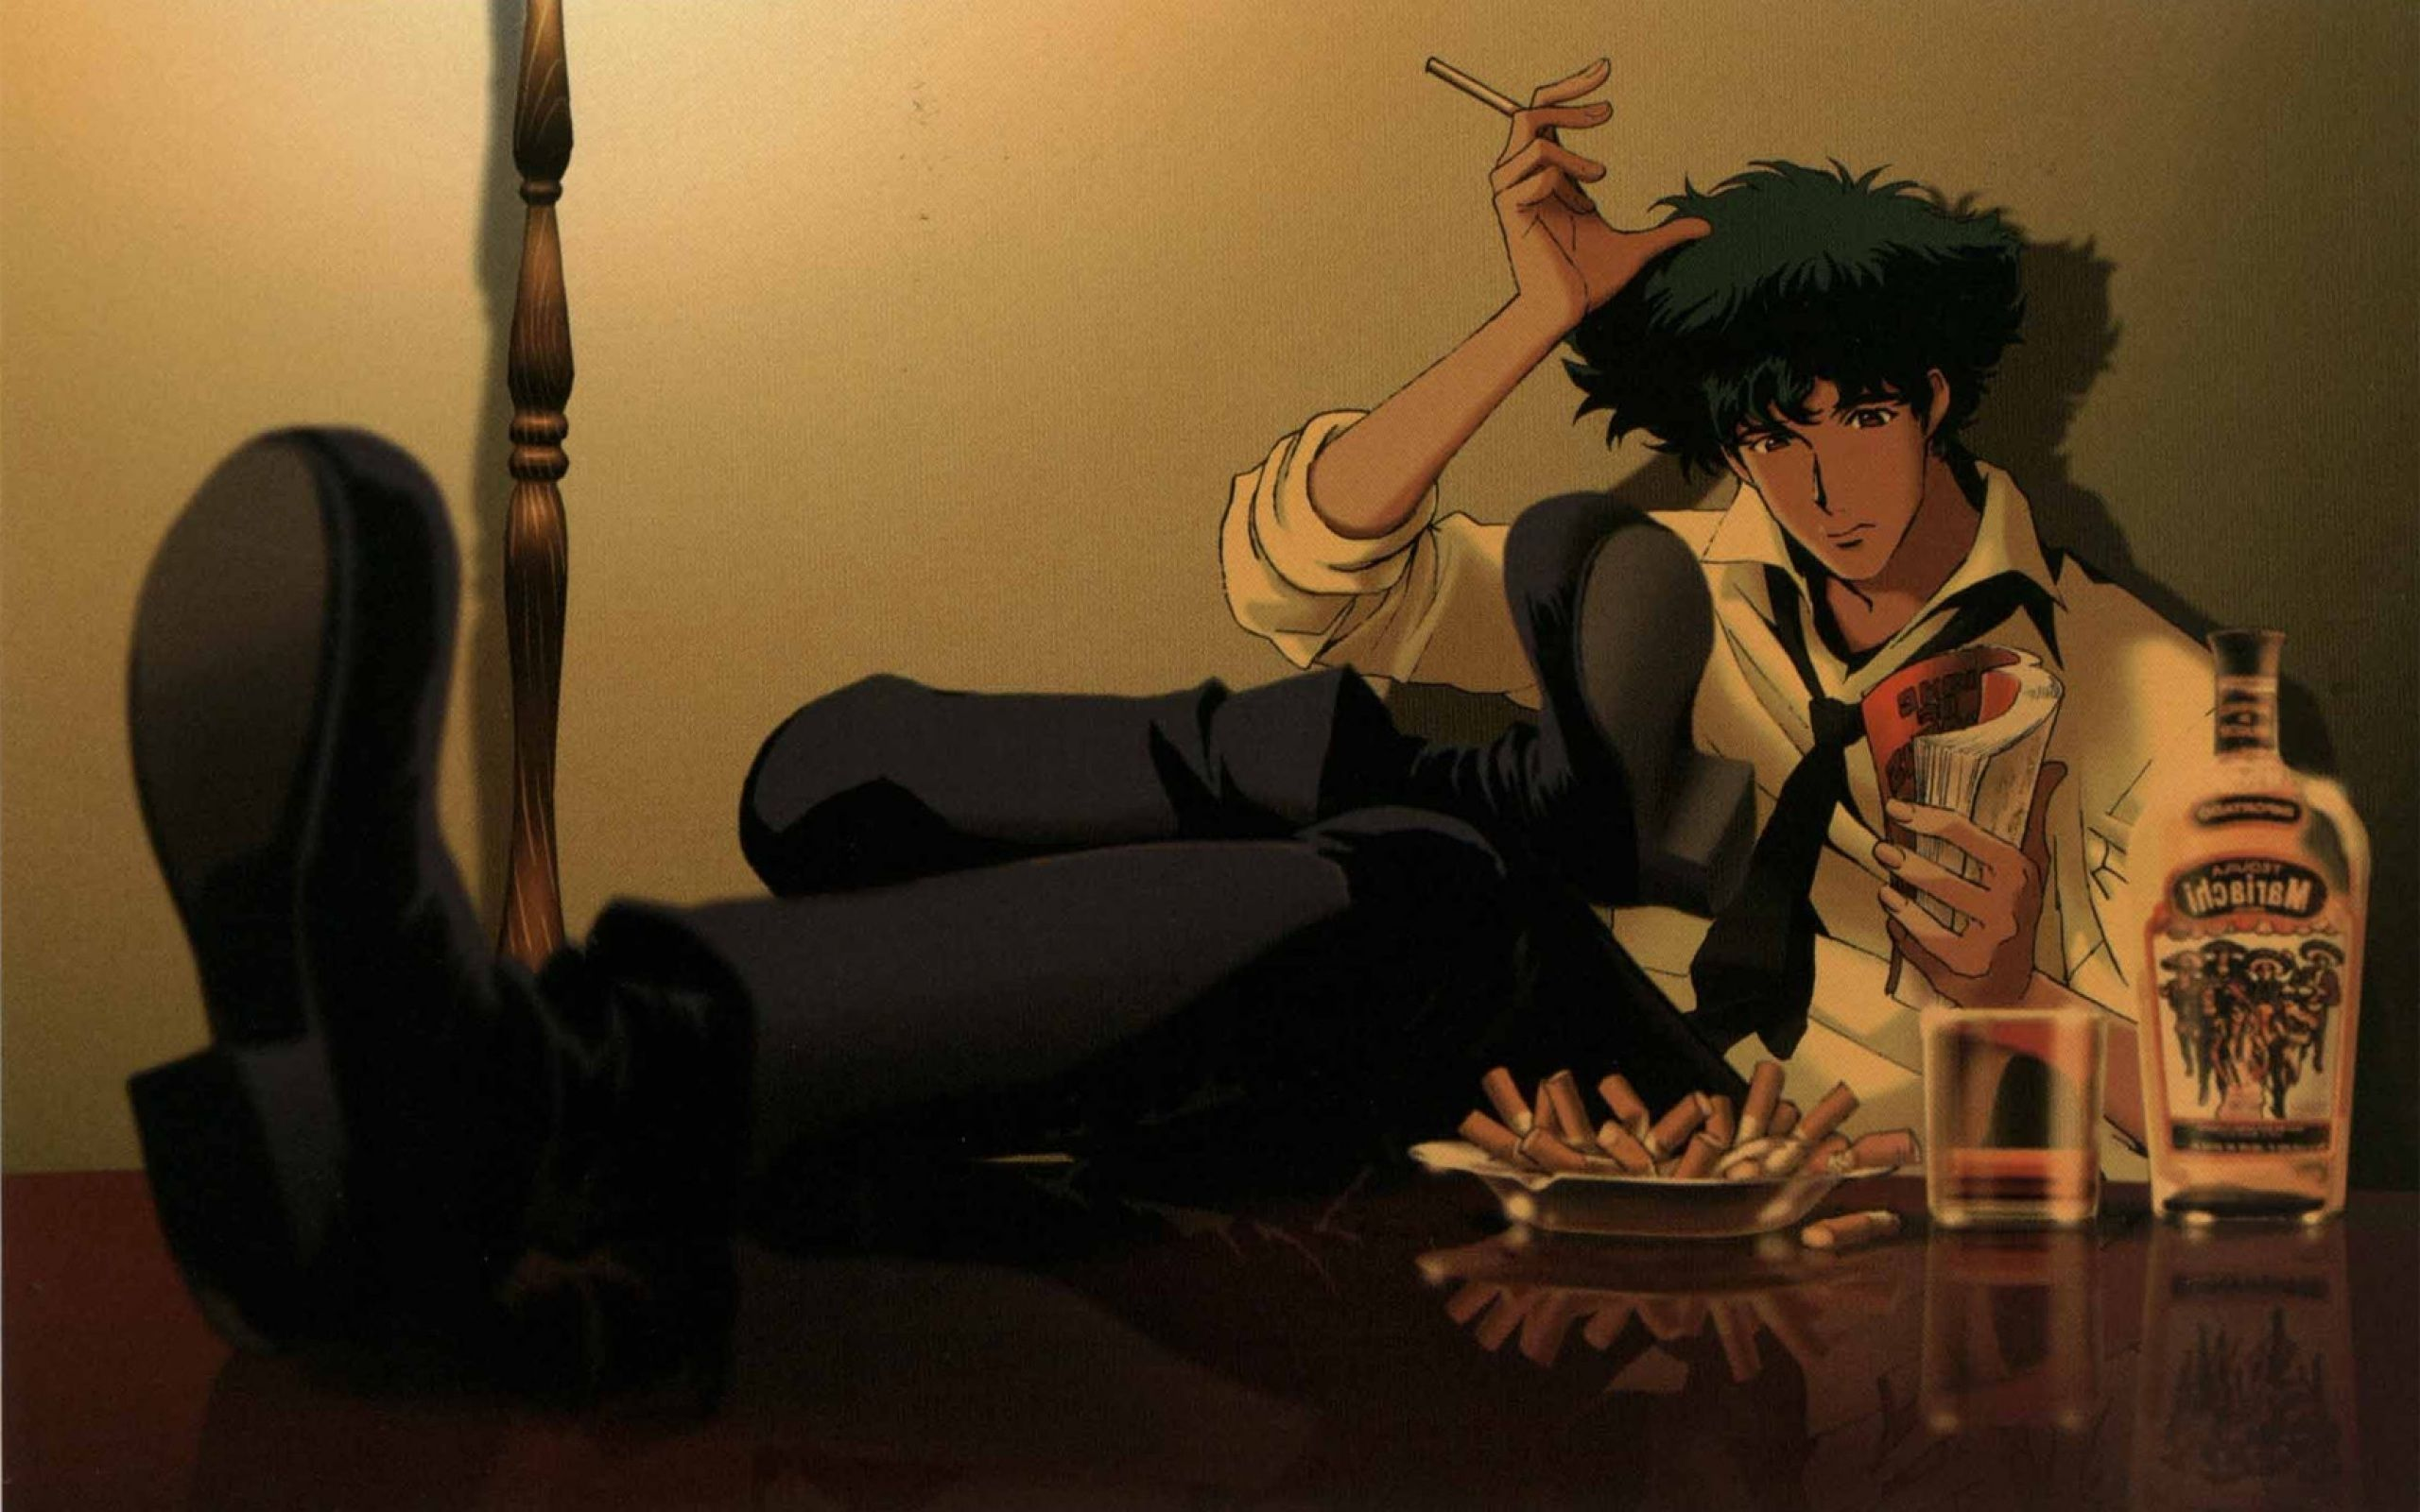 245 Cowboy Bebop Hd Wallpapers Backgrounds Wallpaper Abyss In 2020 Cowboy Bebop Wallpapers Cowboy Bebop Bebop